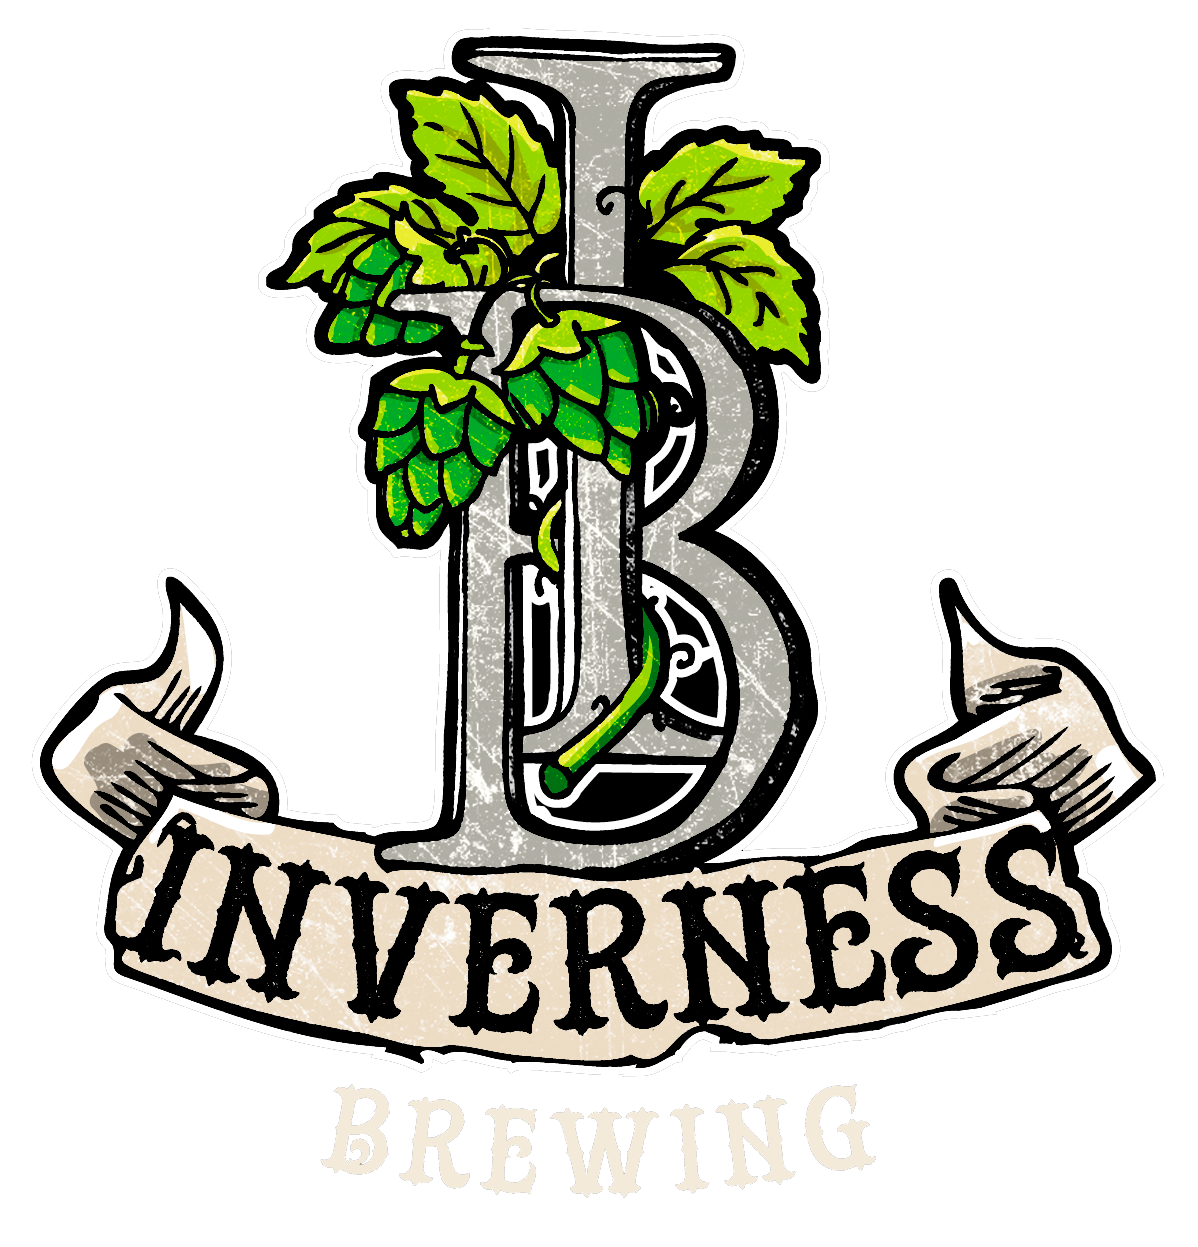 Inverness Brewing